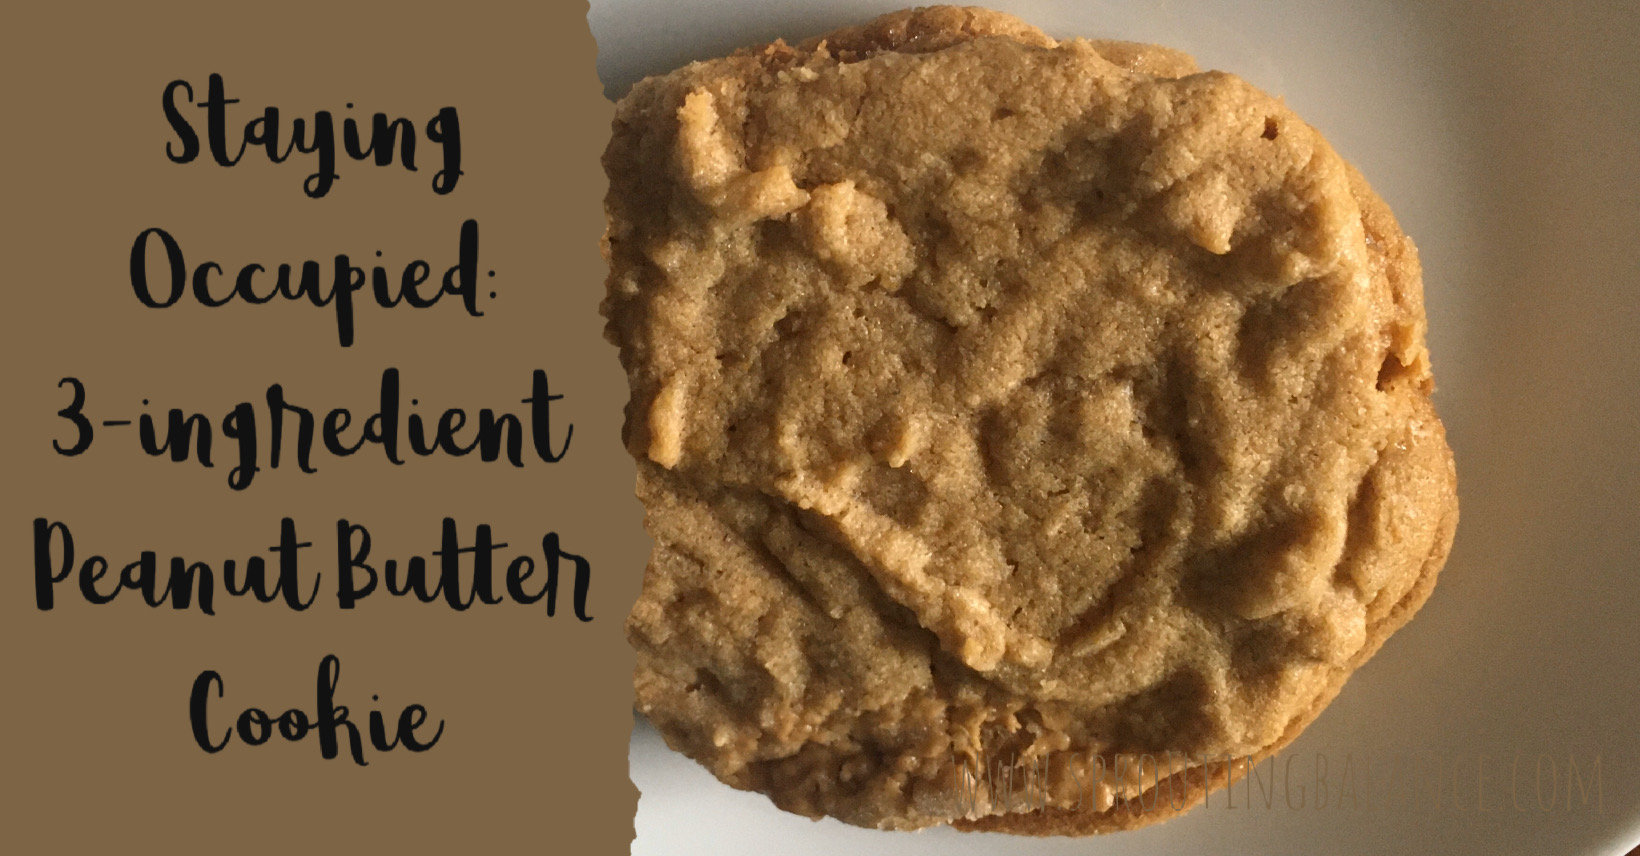 Staying Occupied: 3-ingredient Peanut Butter Cookies | www.sproutingbalance.com | #stayhome #socialdistancing #bepositive